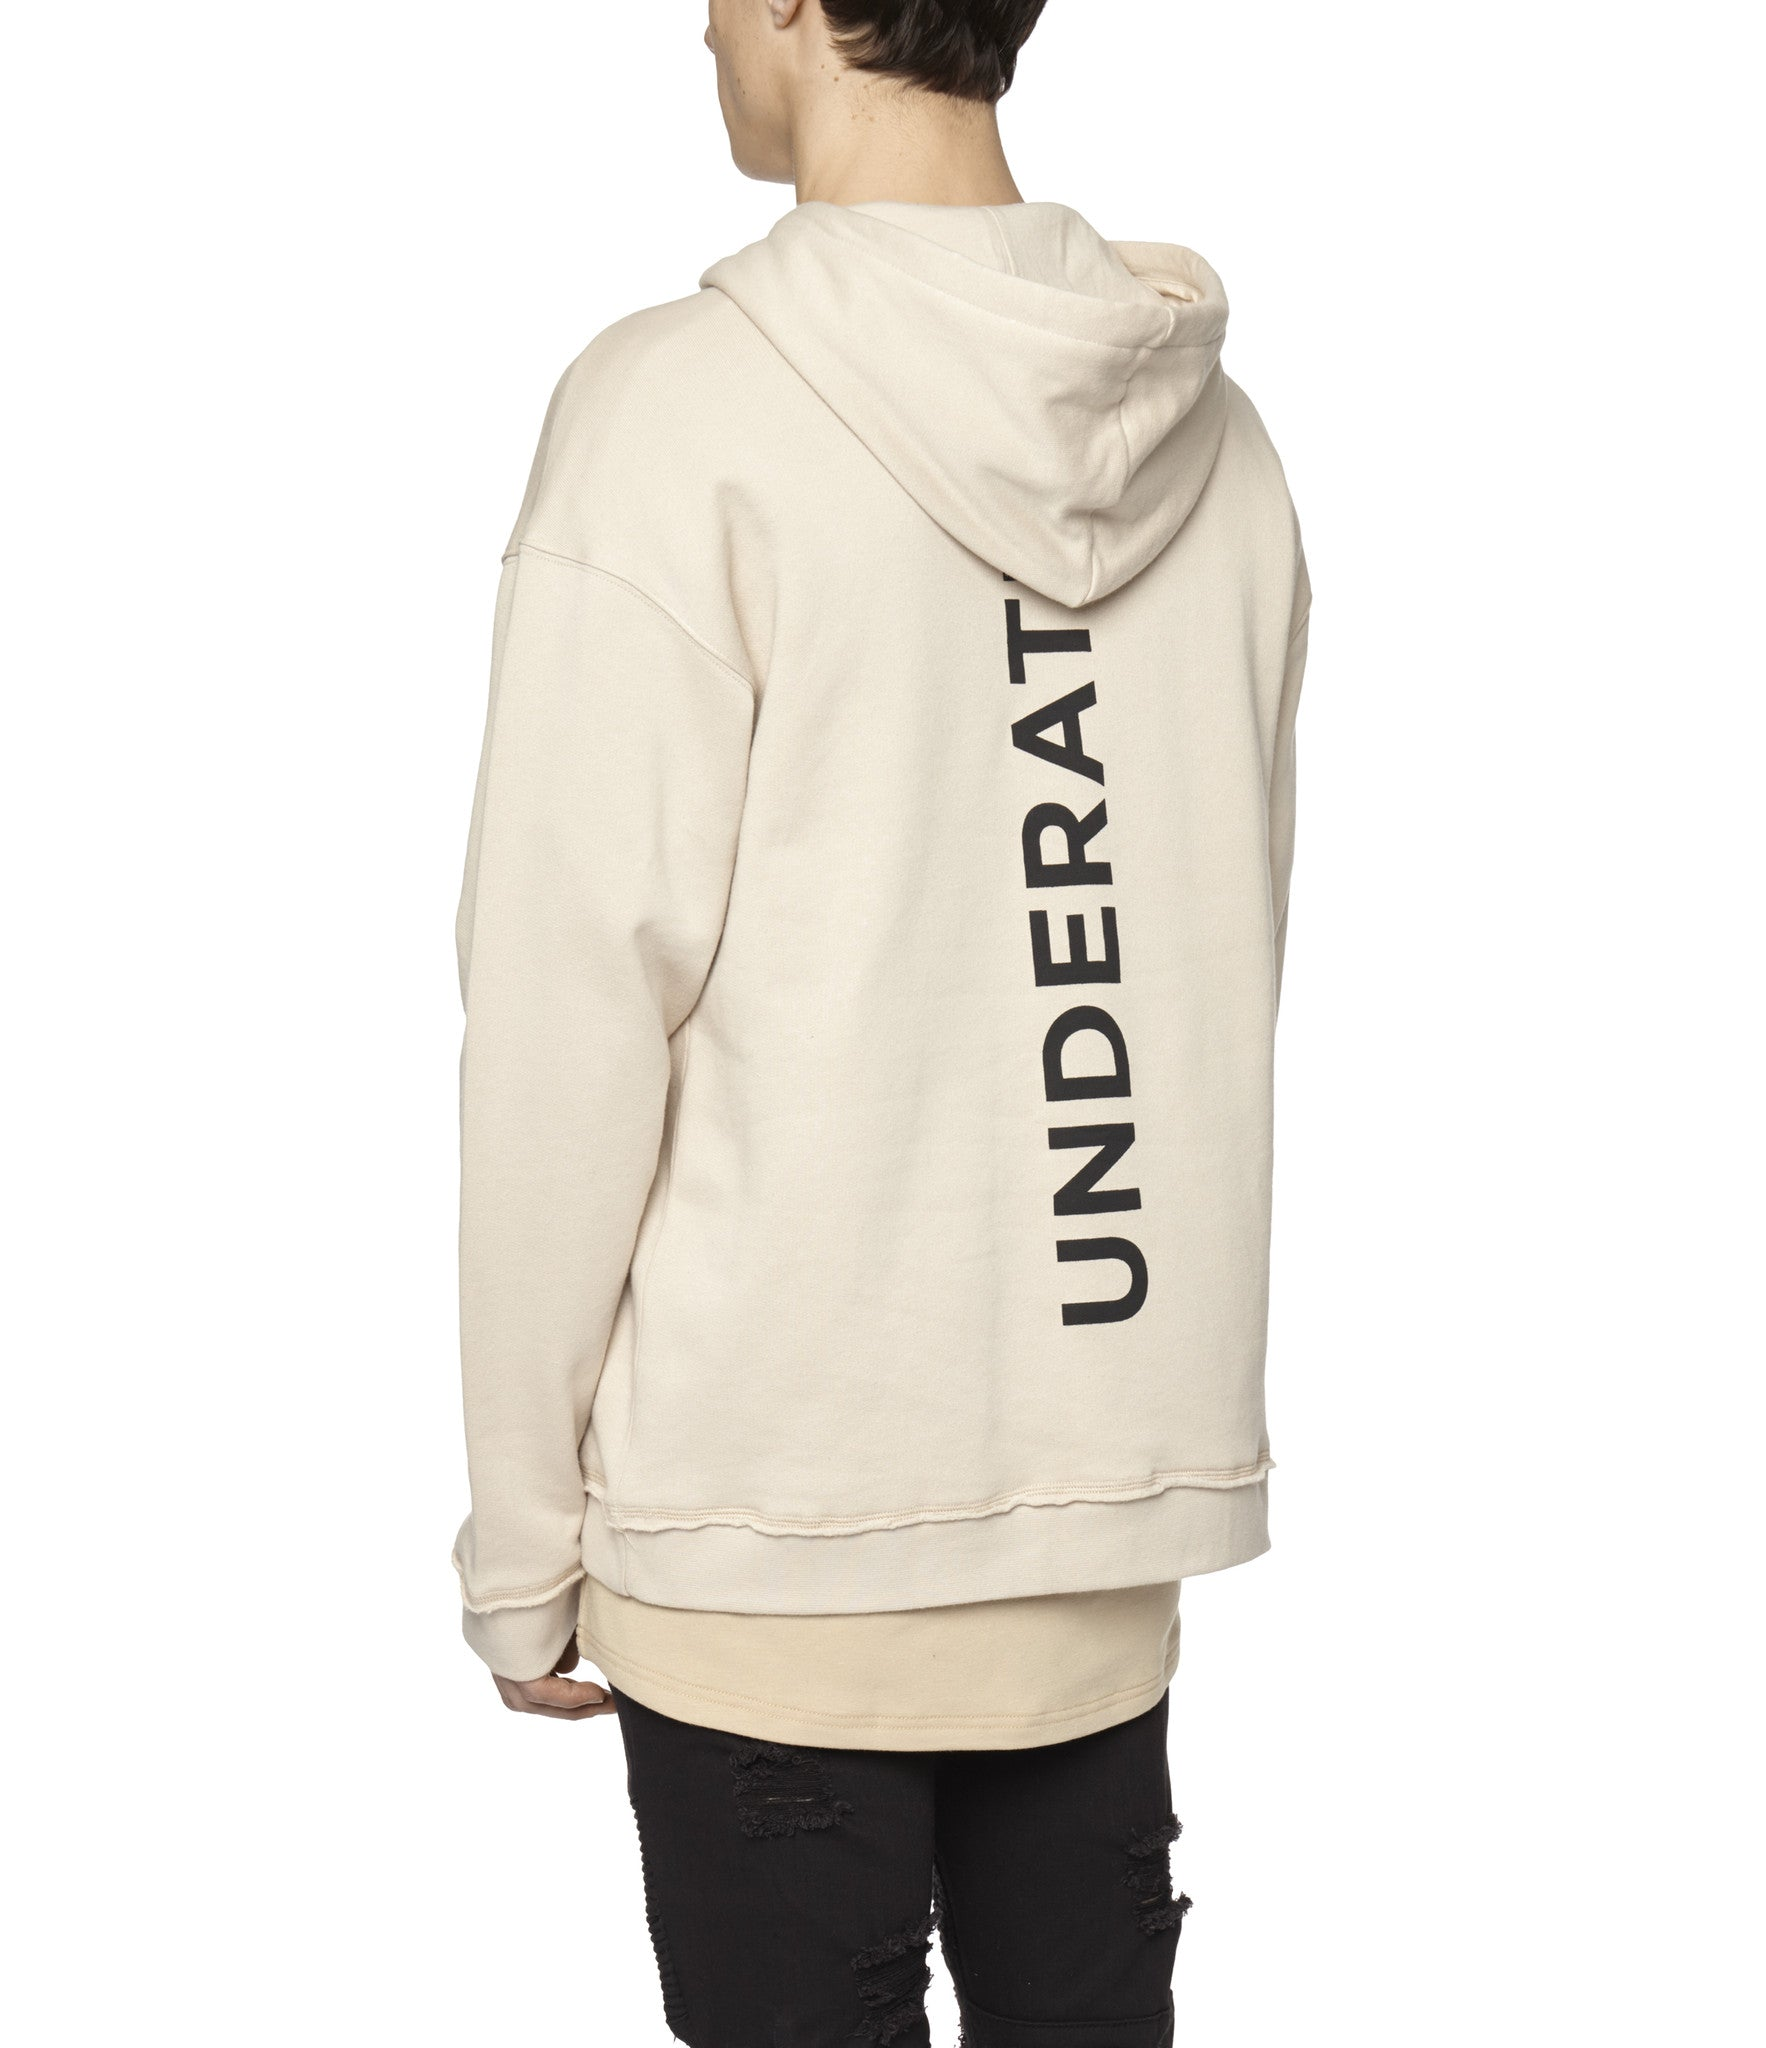 HD334 Printed Hoody - Nude - underated london - underatedco - 7